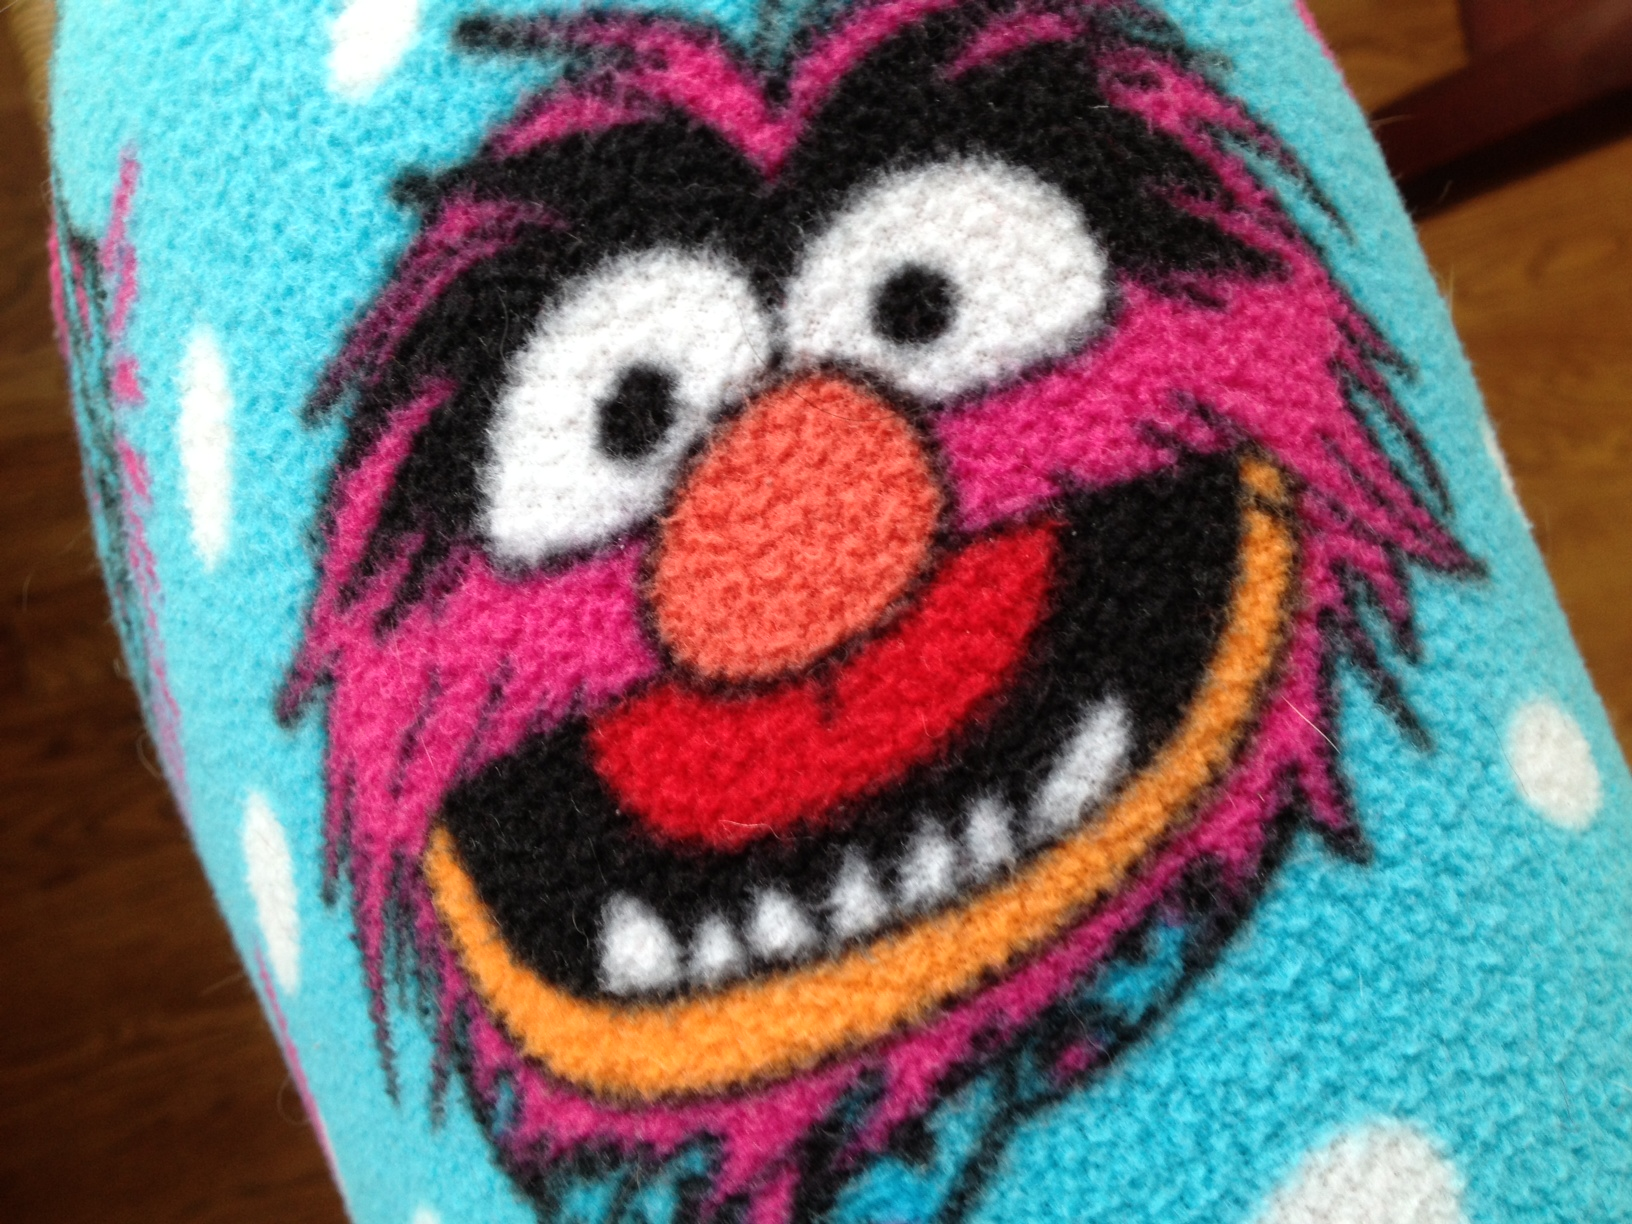 She sometimes wears these (Jim Henson-inspired) pajamas outside - in broad daylight - to walk the dogs.